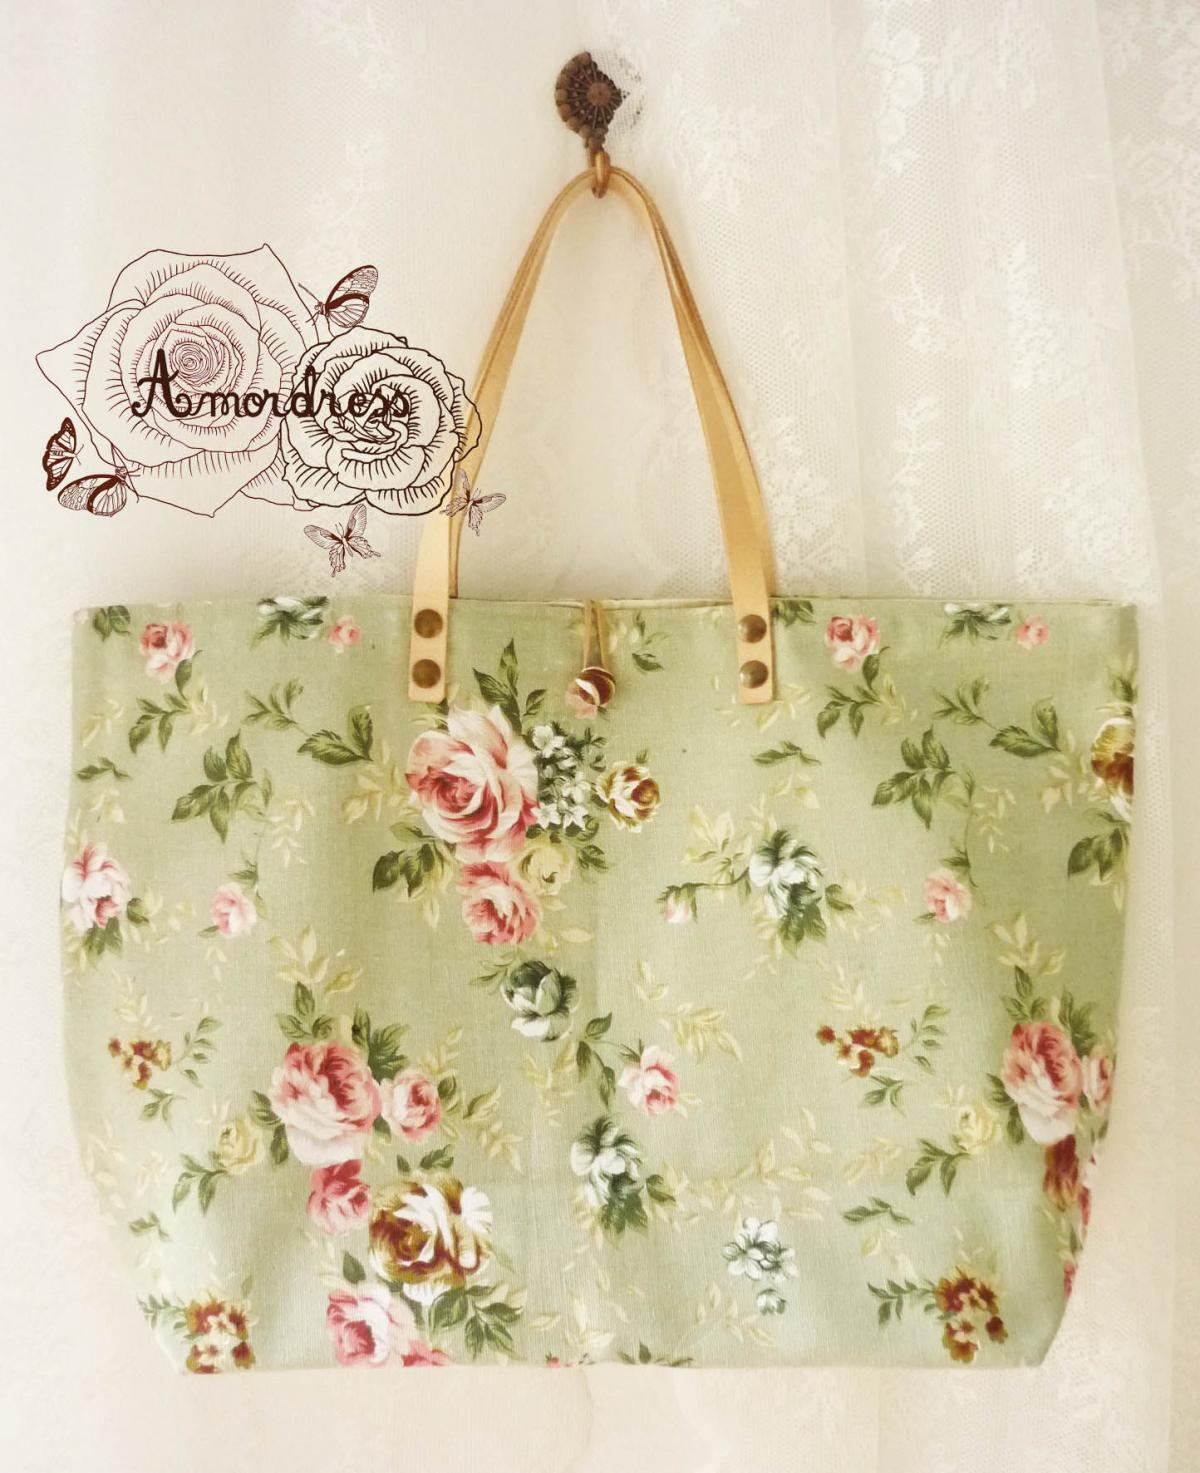 Floral Tote Bag Printed Canvas Bag Genuine Leather Strap Green with Pink Rose Shabby Chic Bag ...Amor The Inspired Collection...